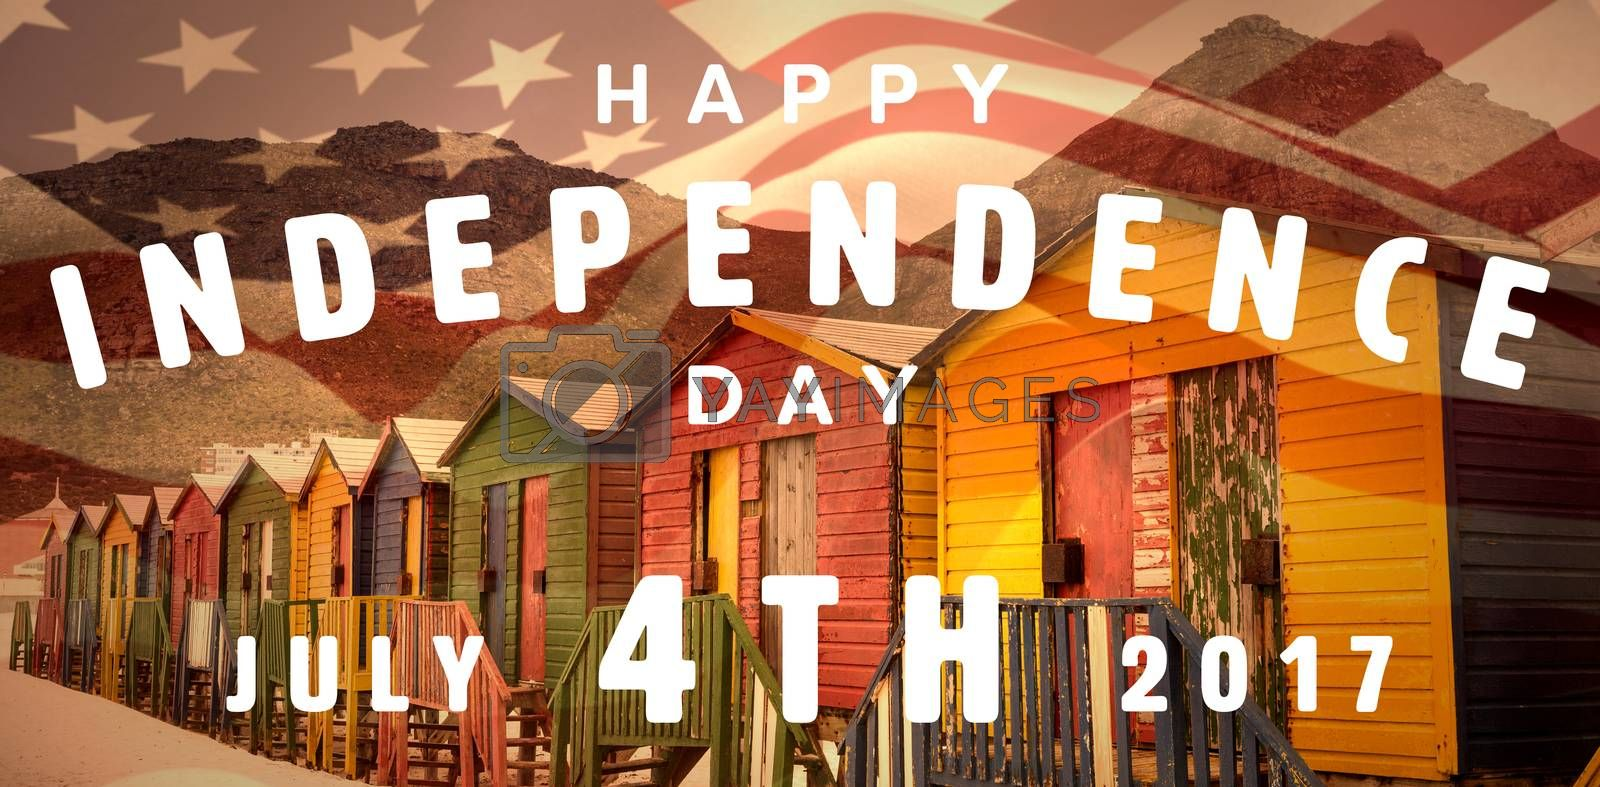 Happy 4th of july text on white background against multi colored wooden huts by mountain at beach